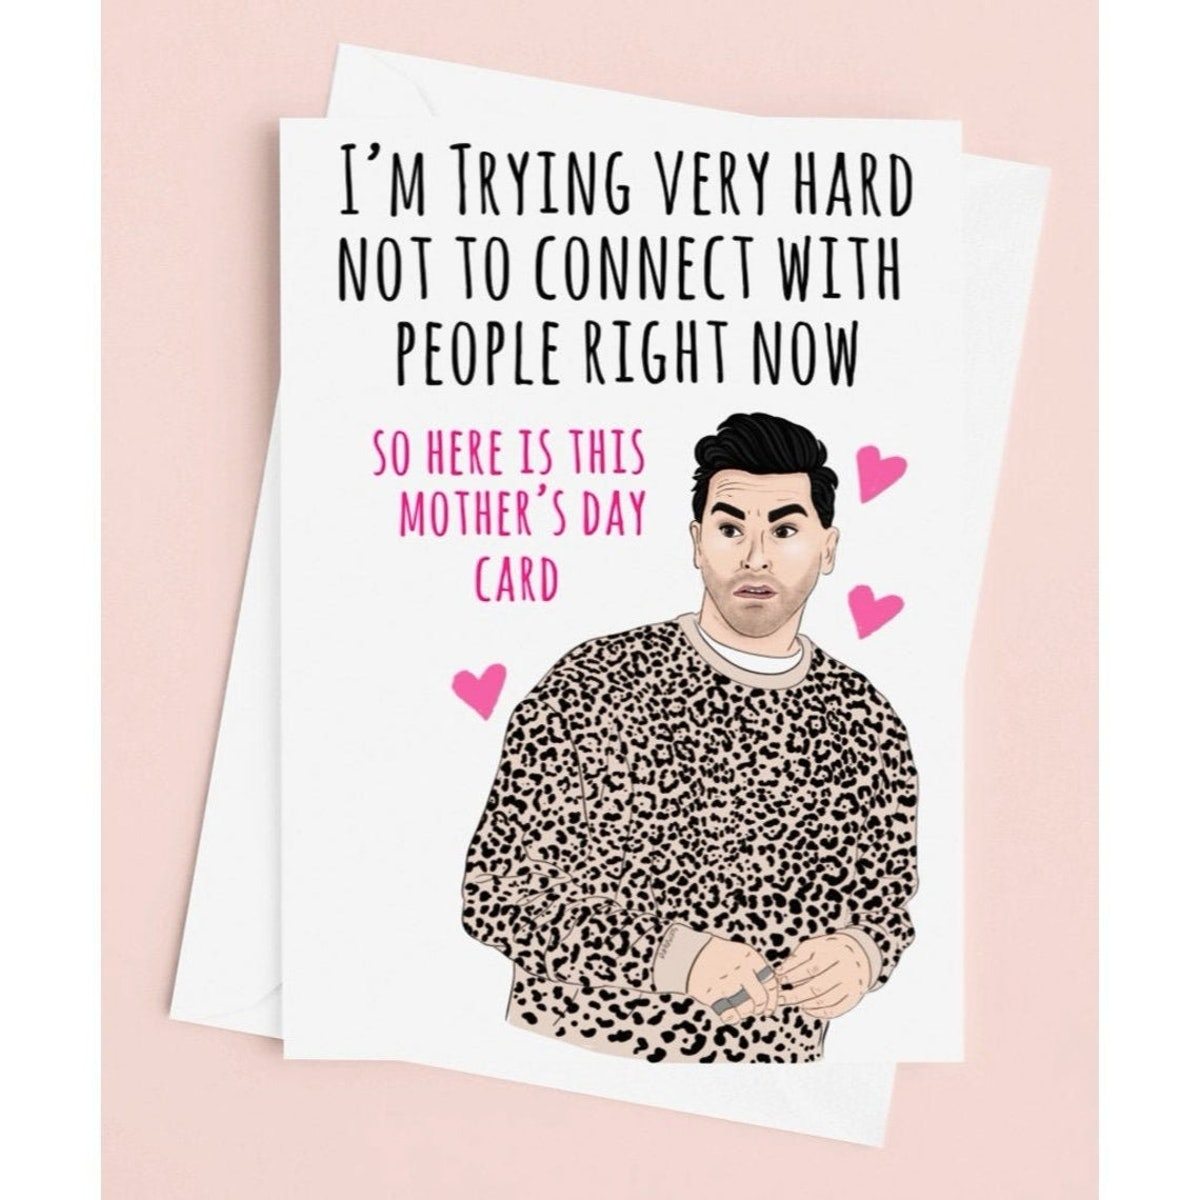 I'm Trying Really Hard Not To Connect David Mother's Day Card